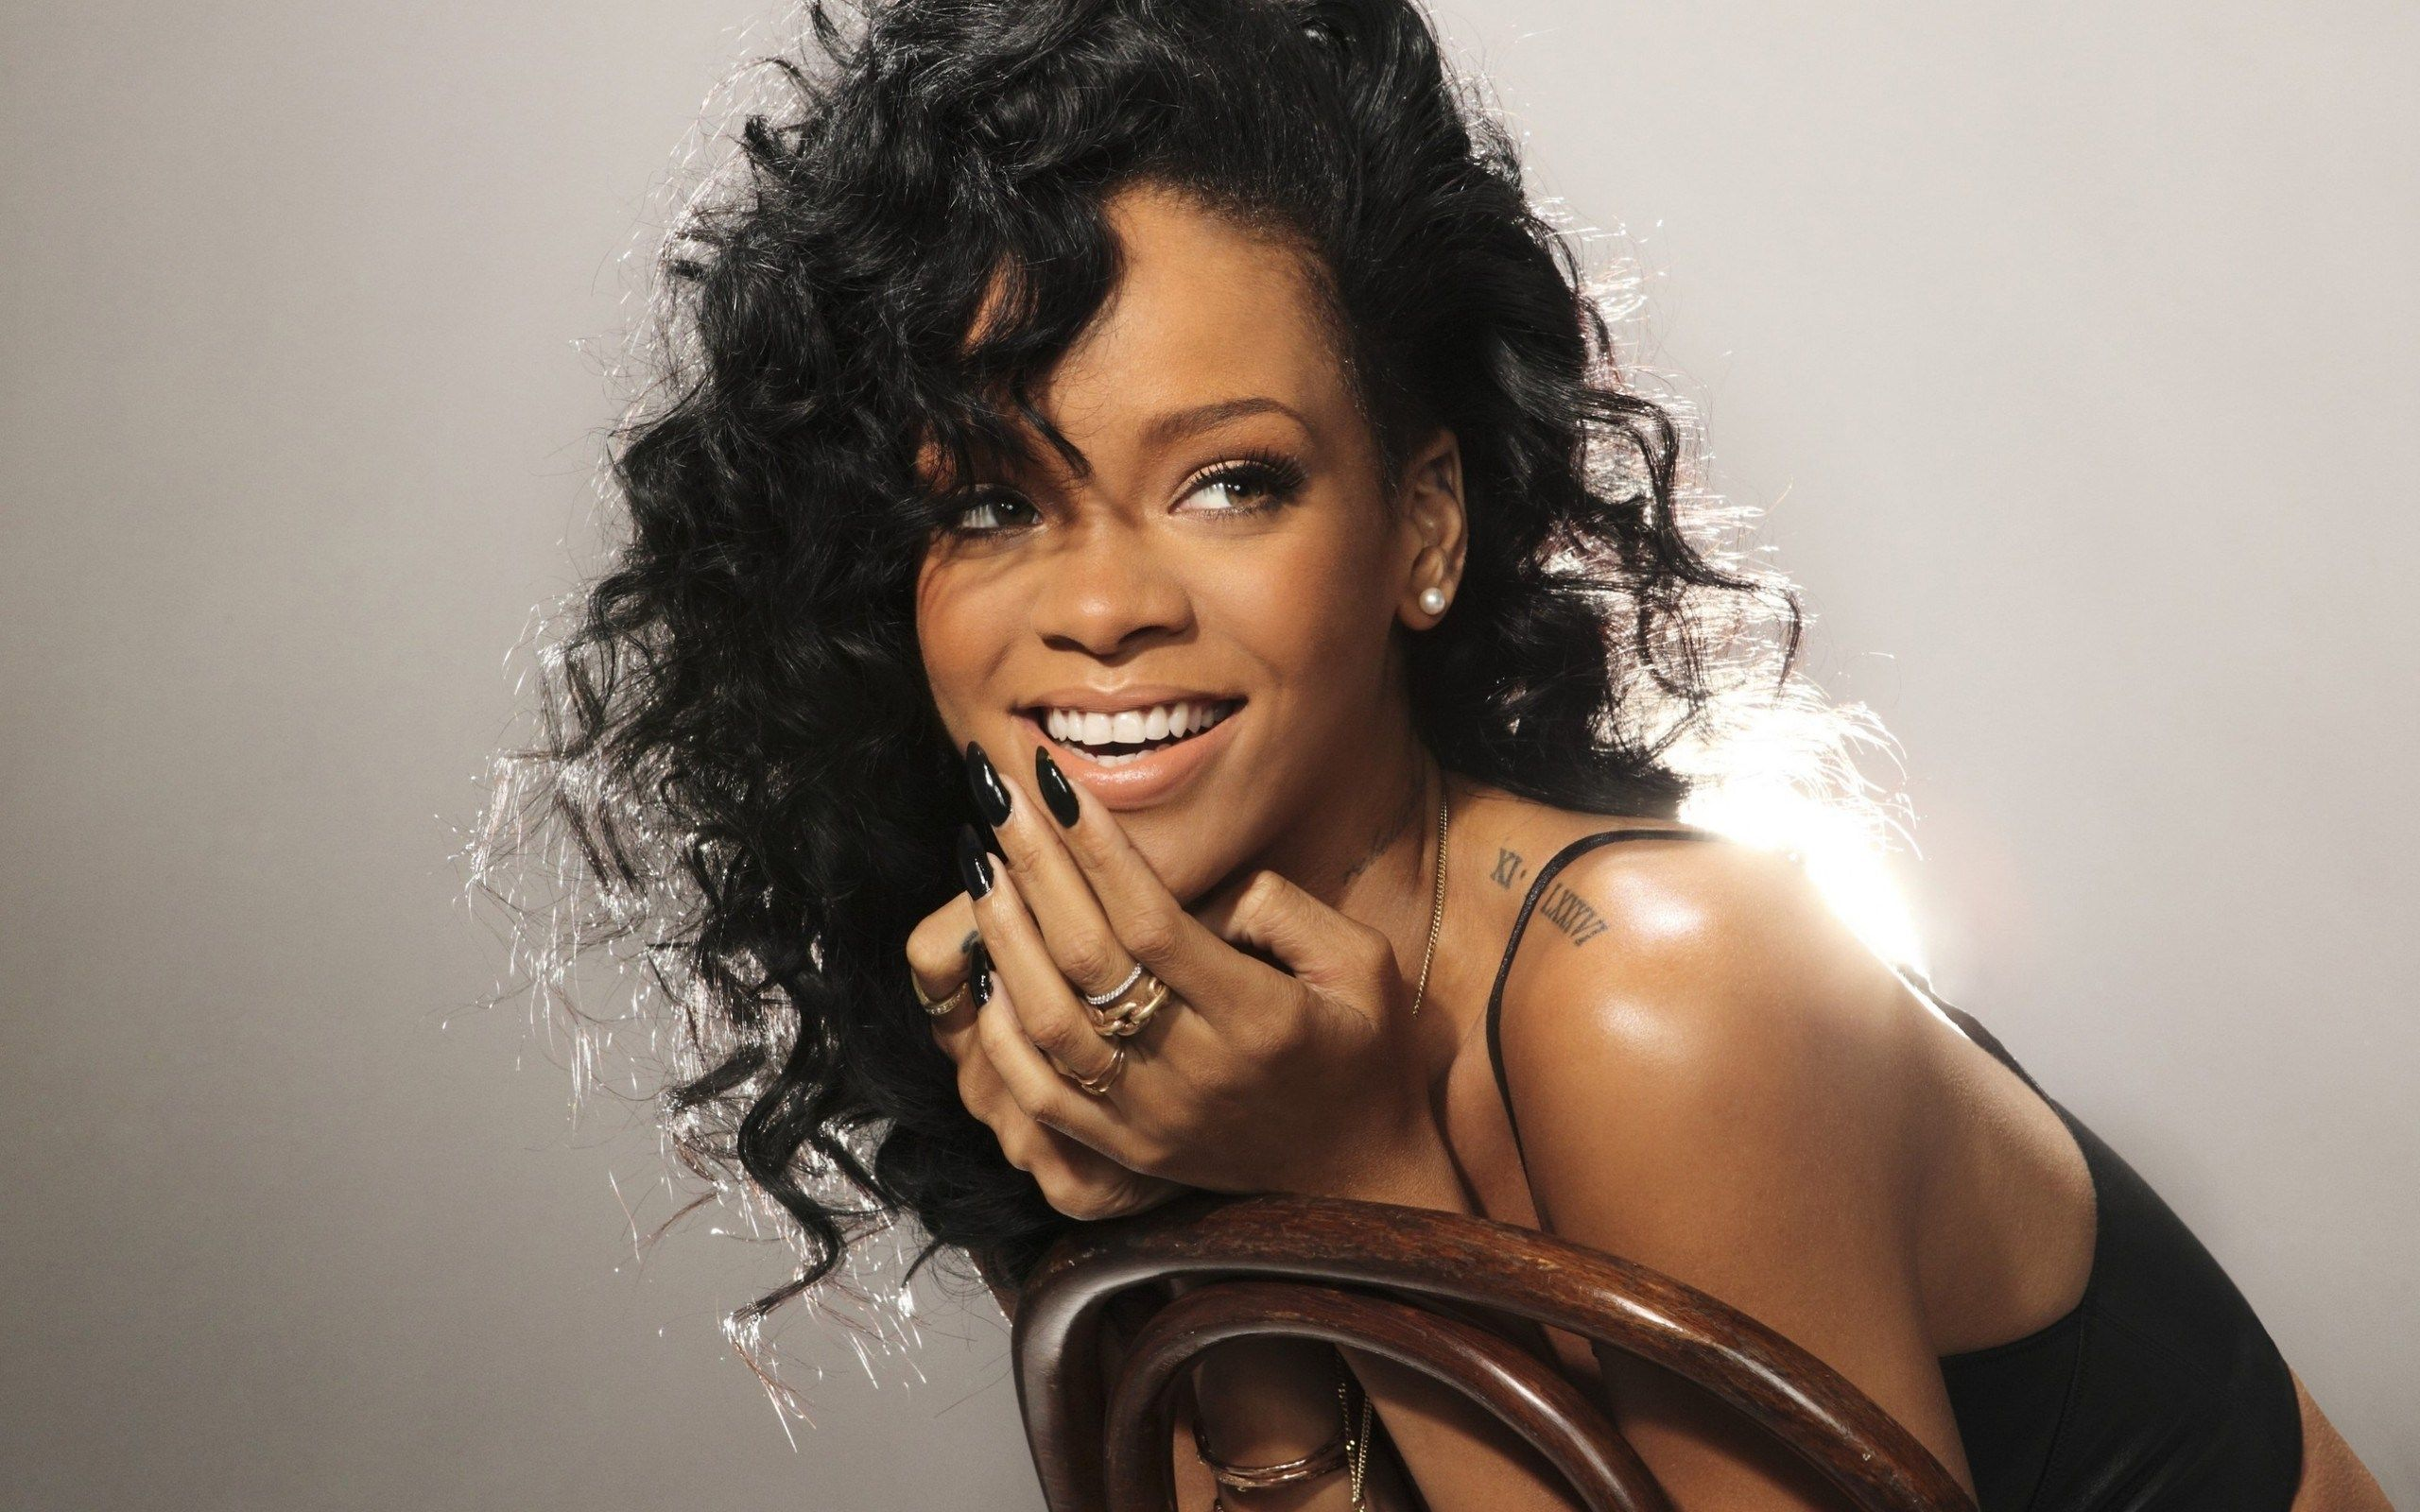 rihanna wallpapers hd: download free rihanna wallpaper | singers i